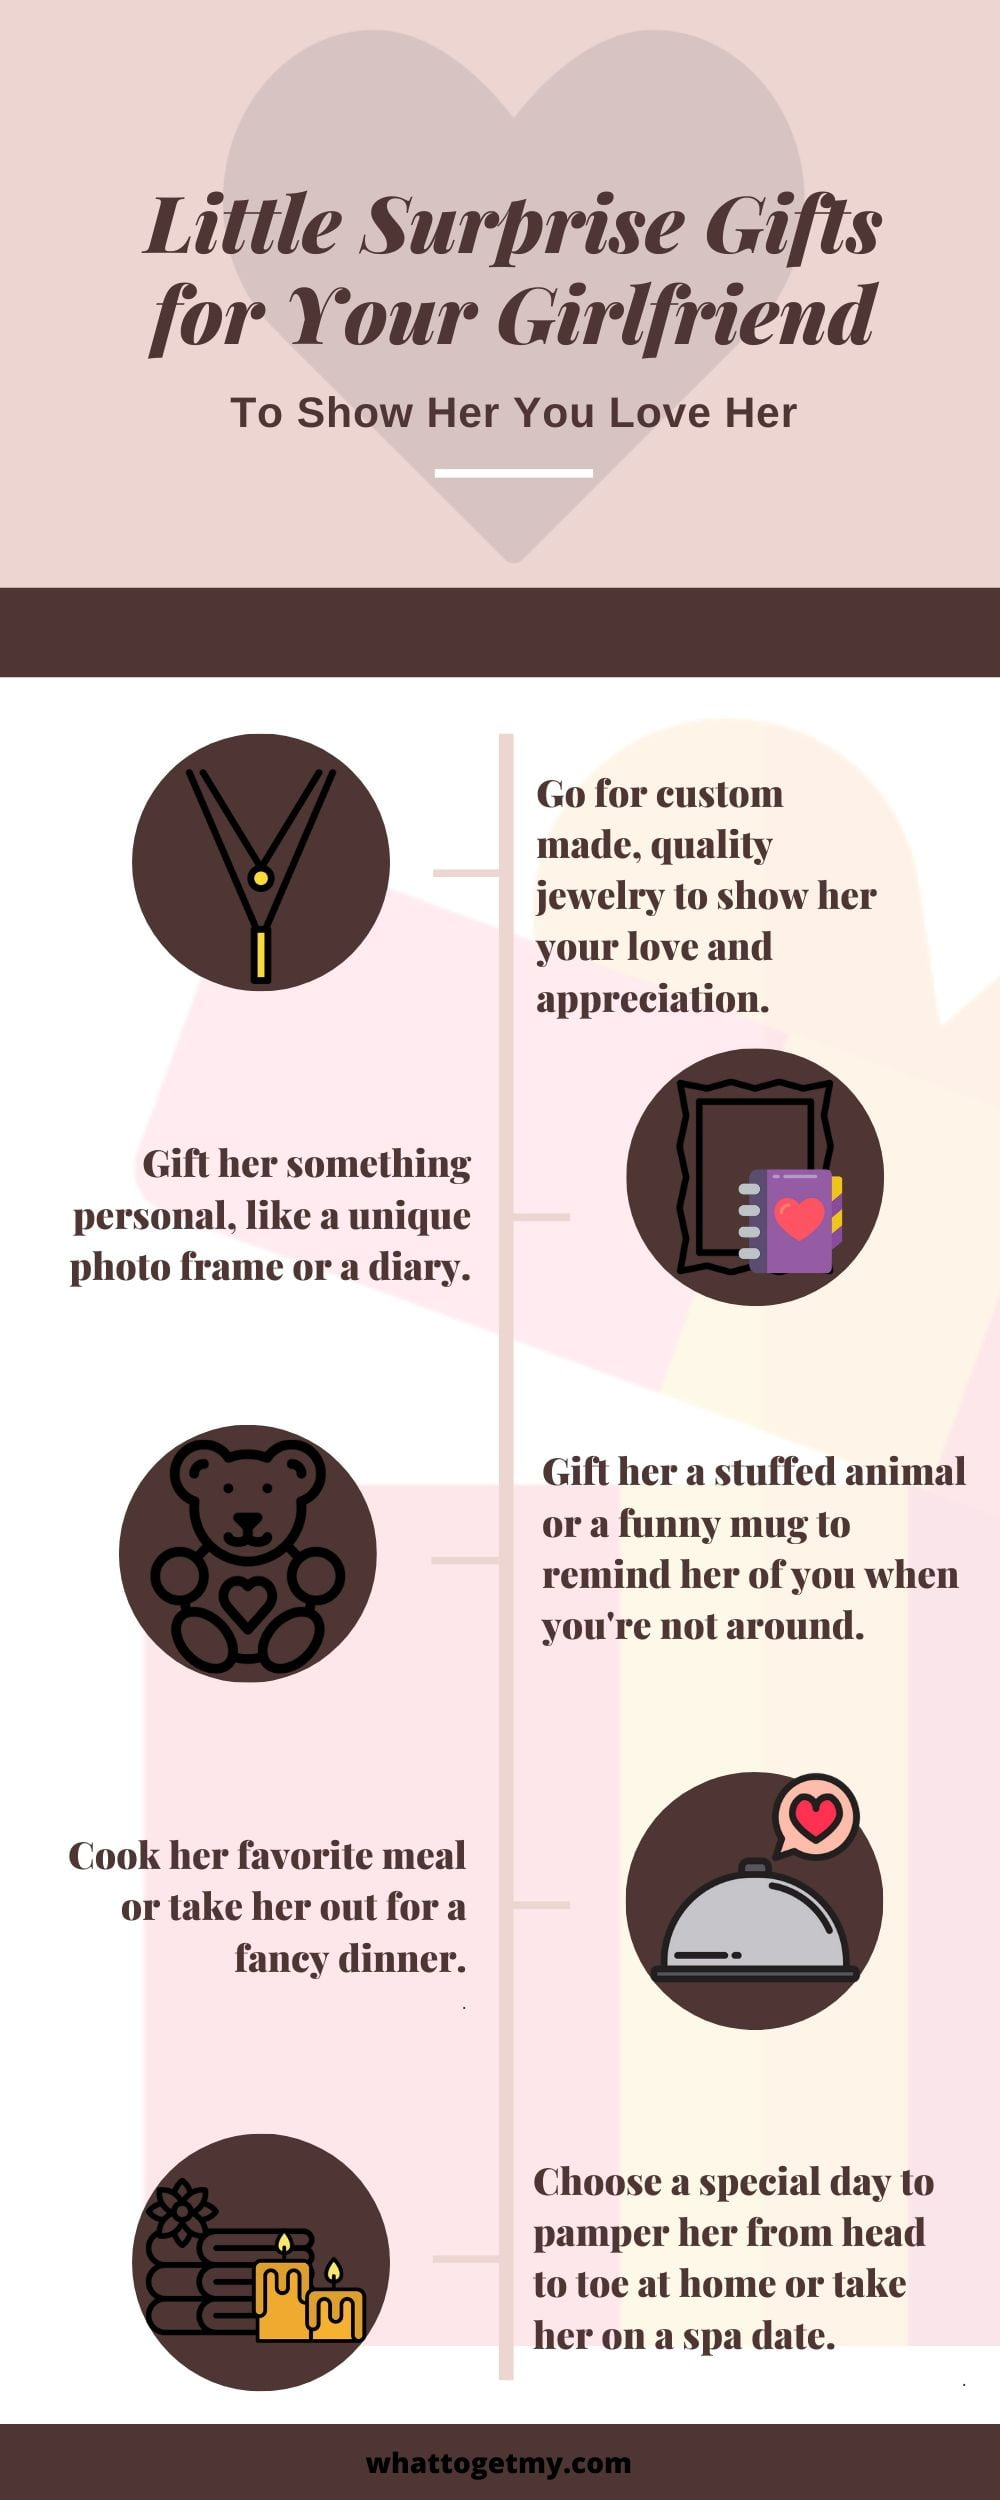 Infographic Gifts for Your Girlfriend